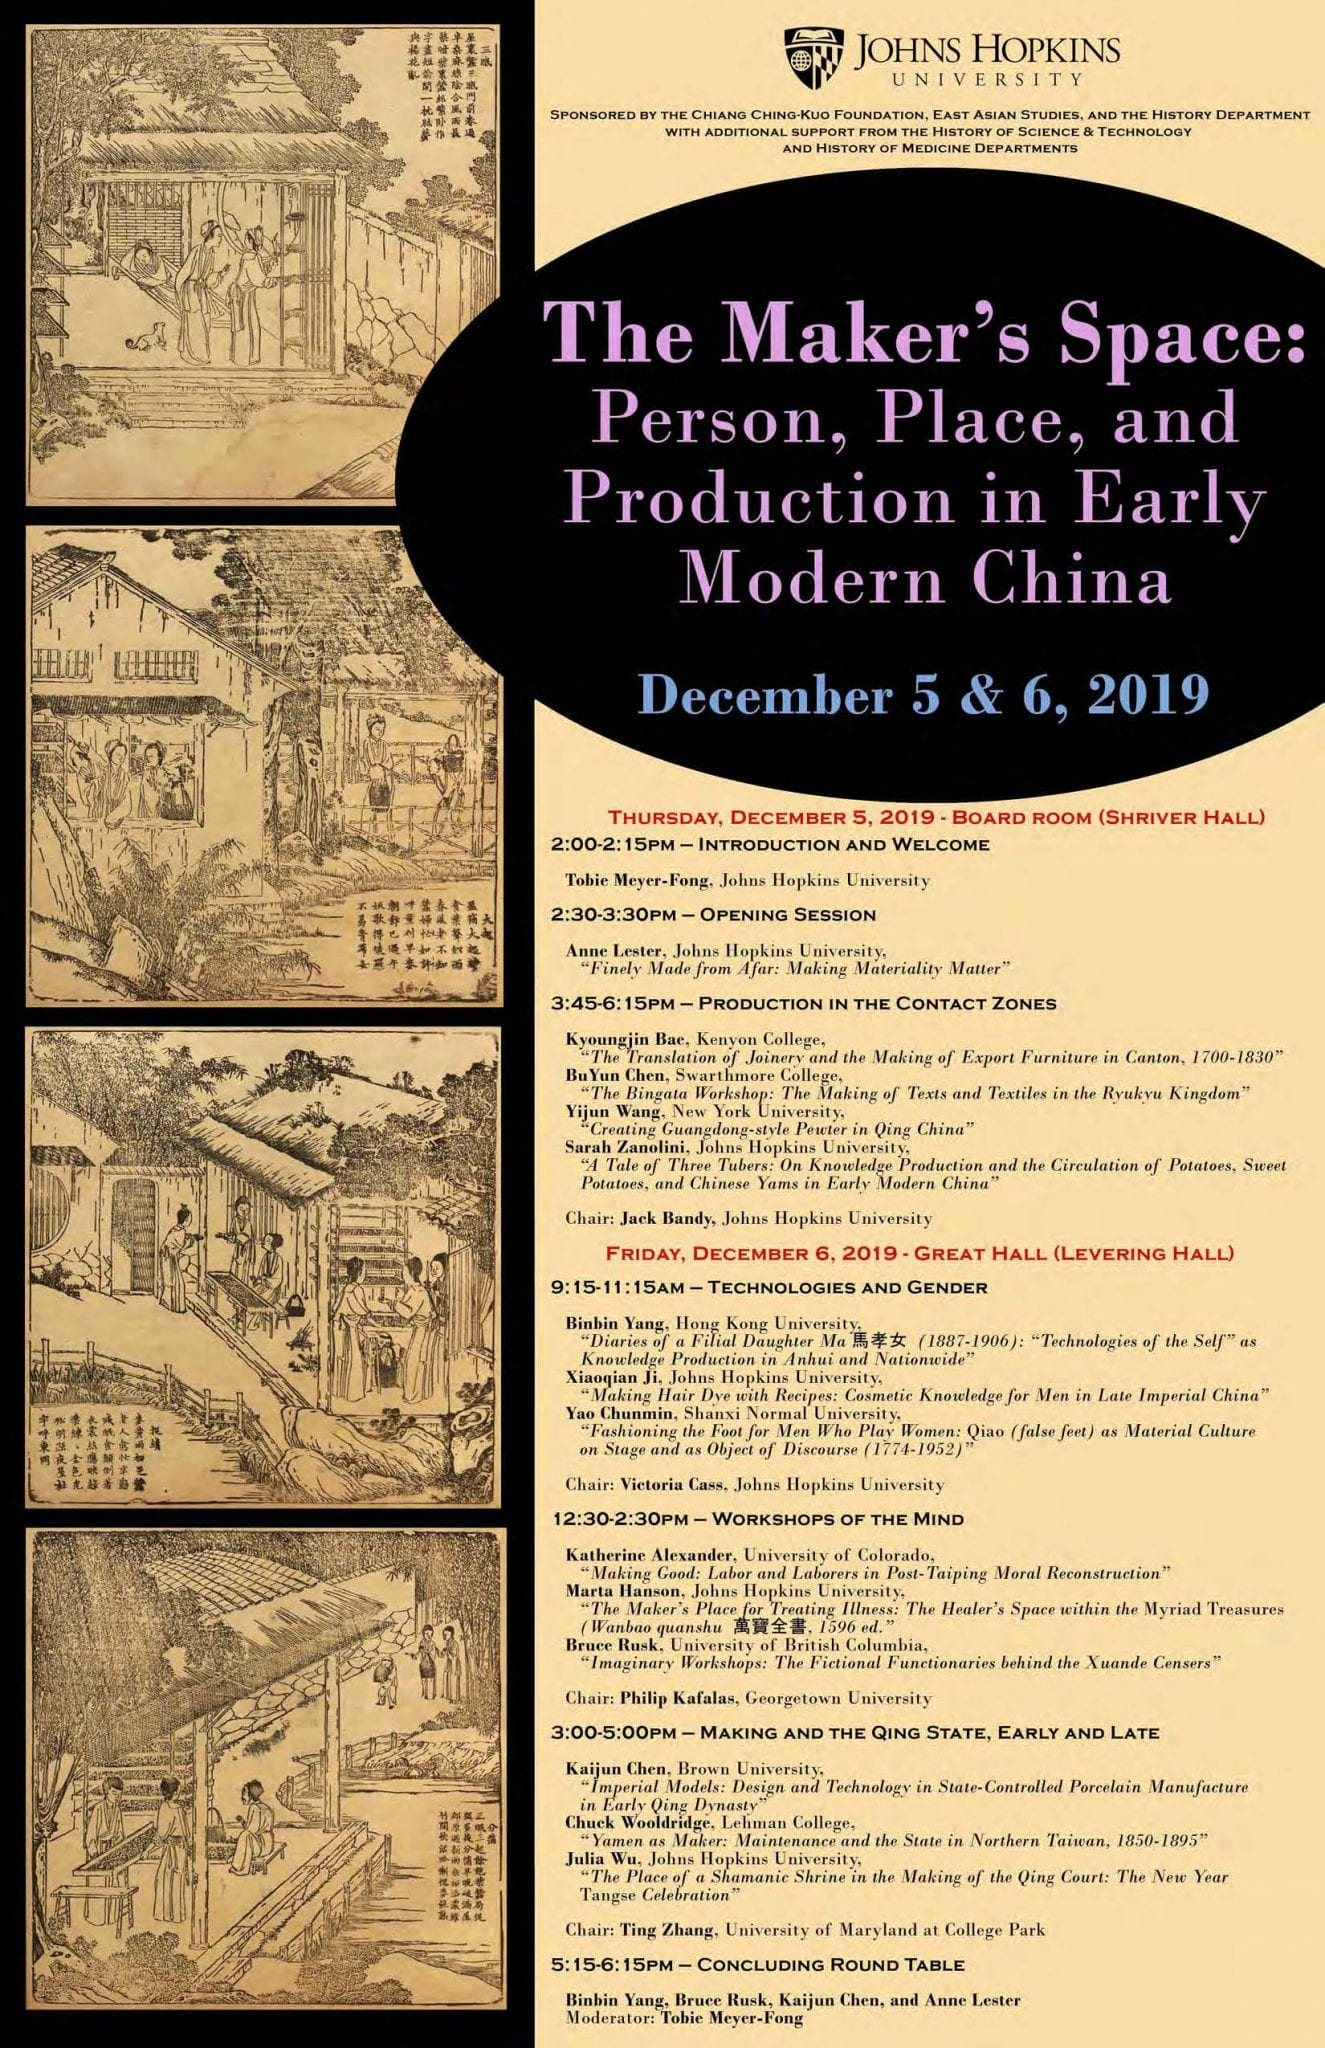 Maker's Space: Person, Place, and Production in Early Modern China